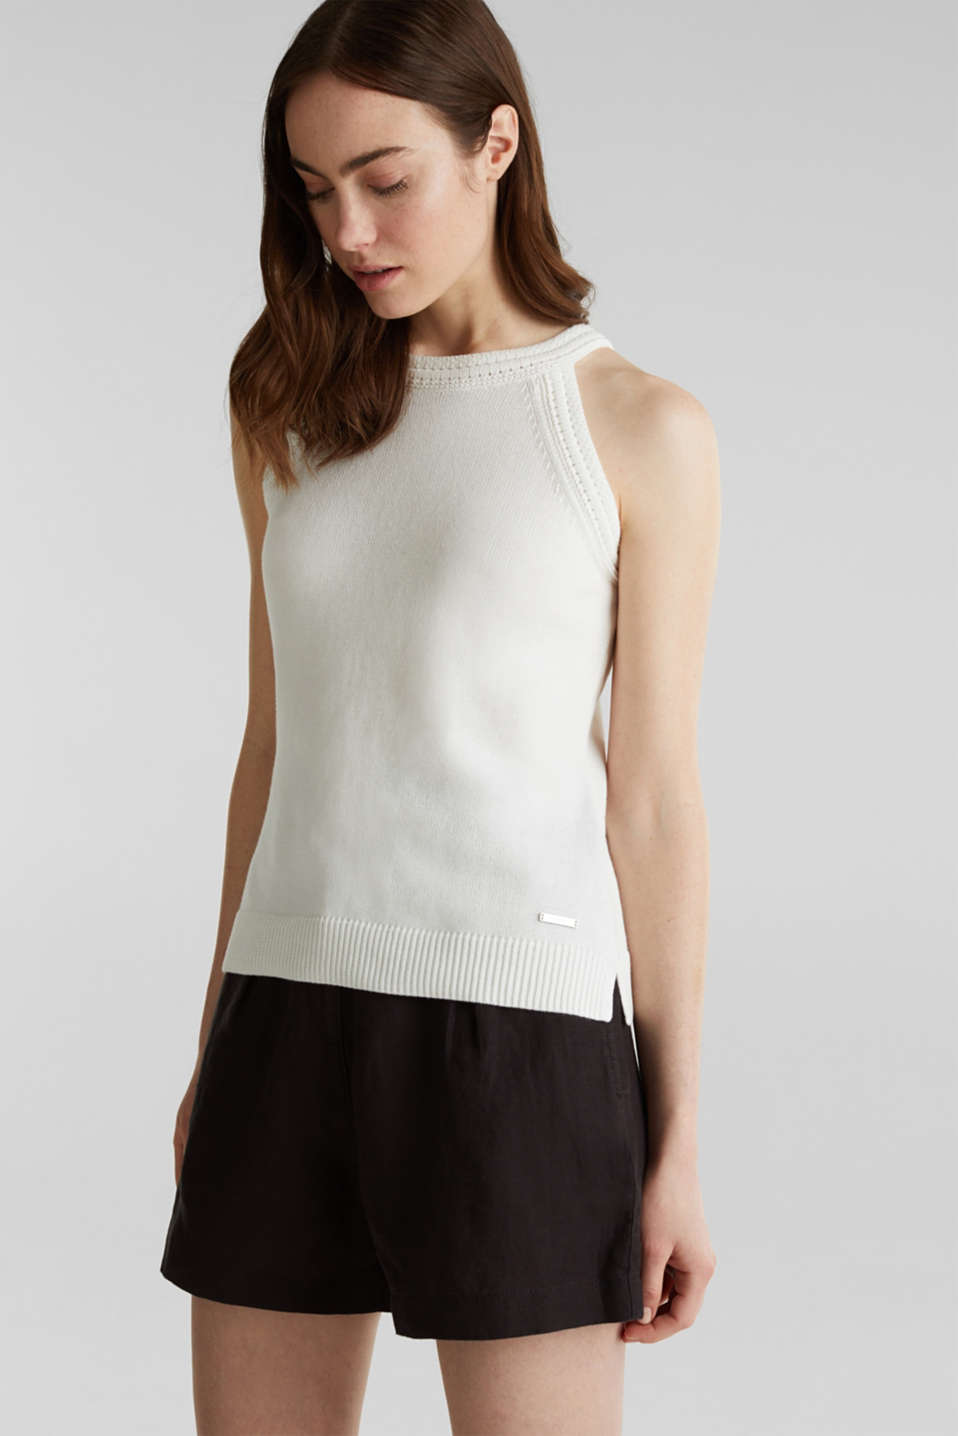 Esprit - Strick-Top aus 100% Organic Cotton